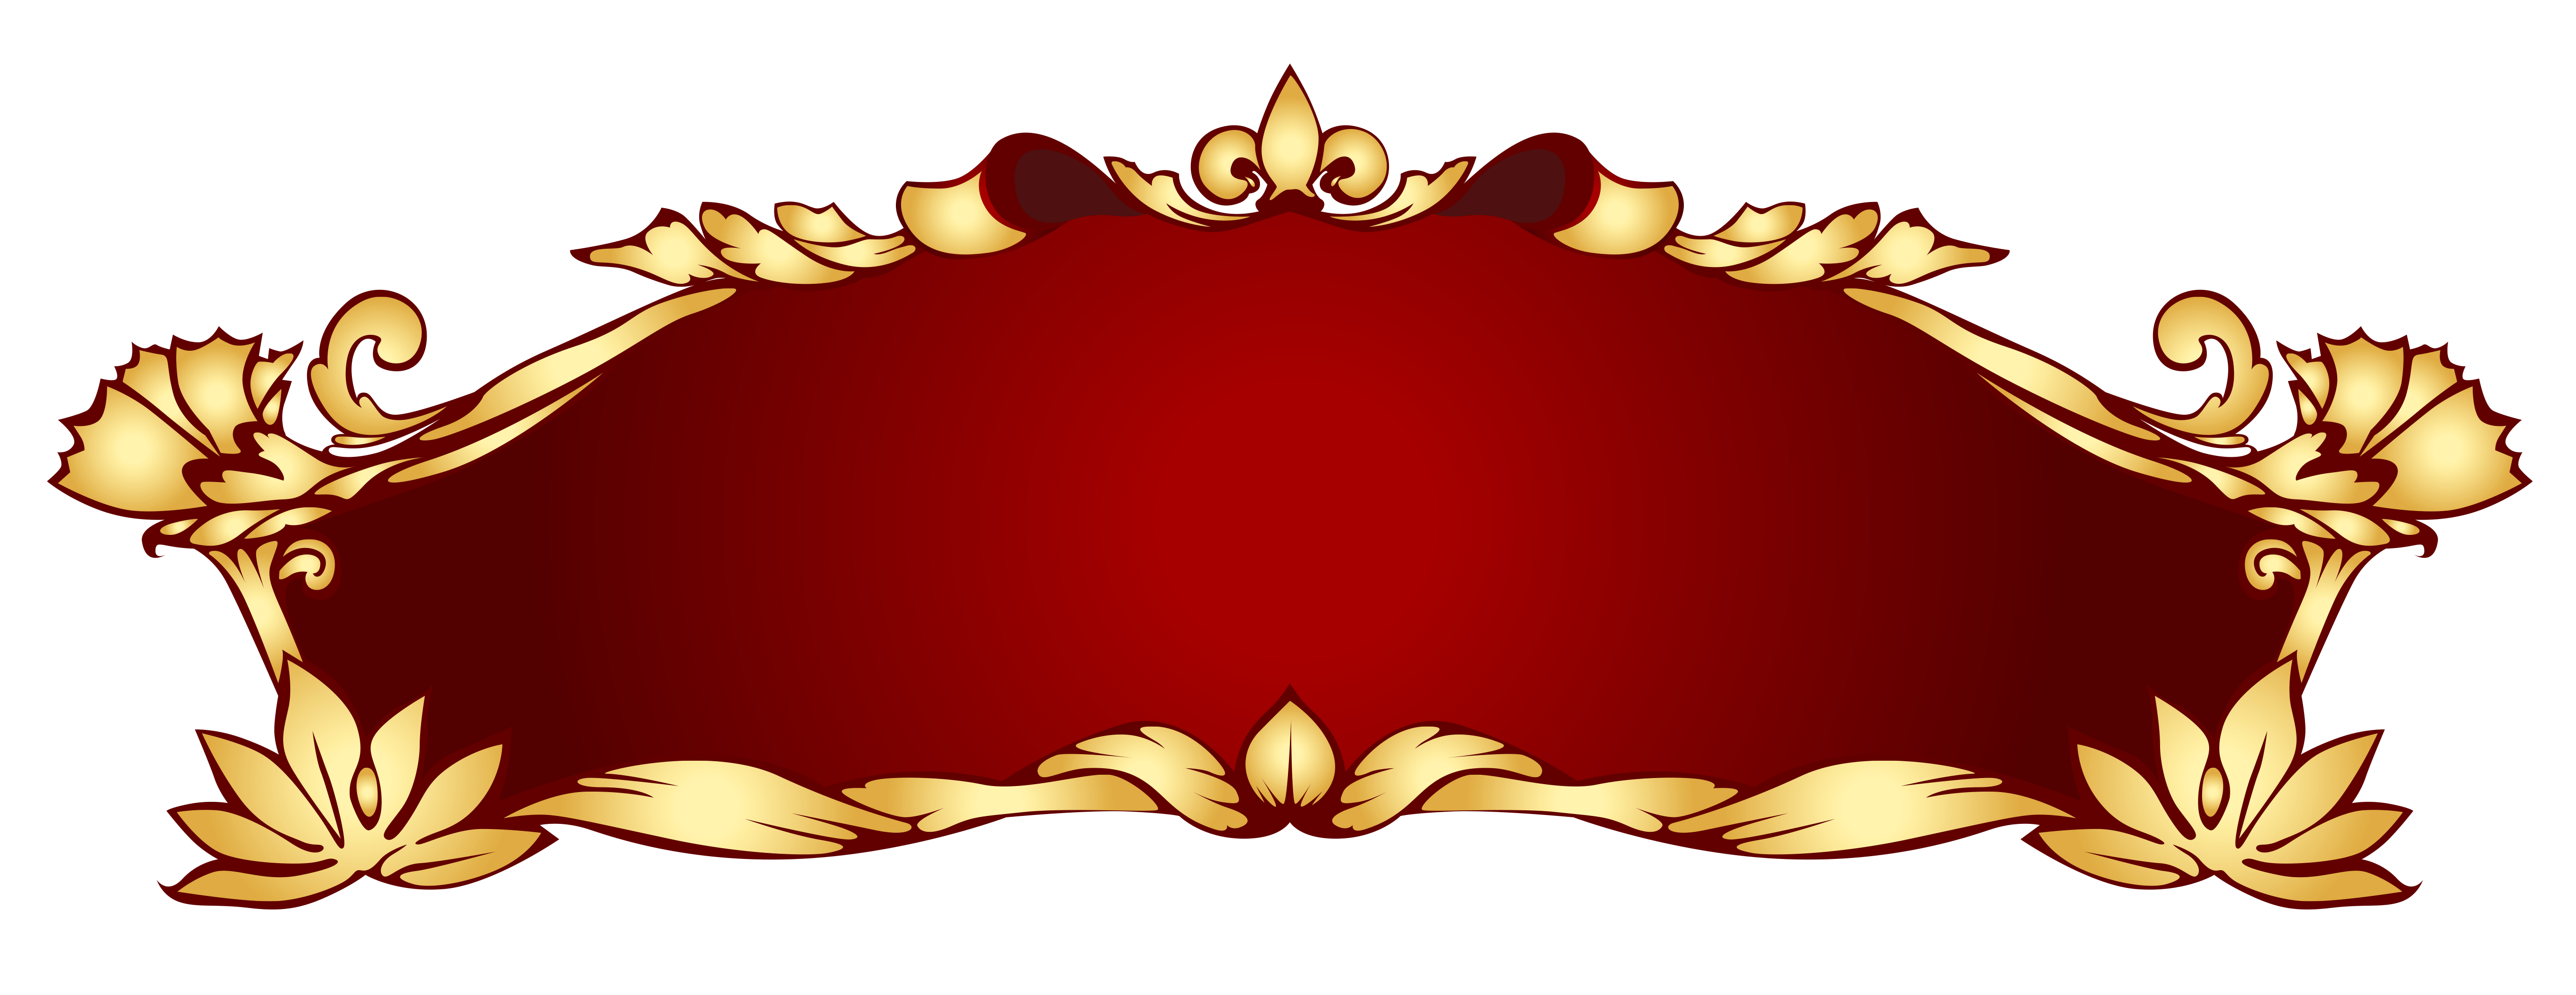 Png red and gold banner. Art nouveau photos